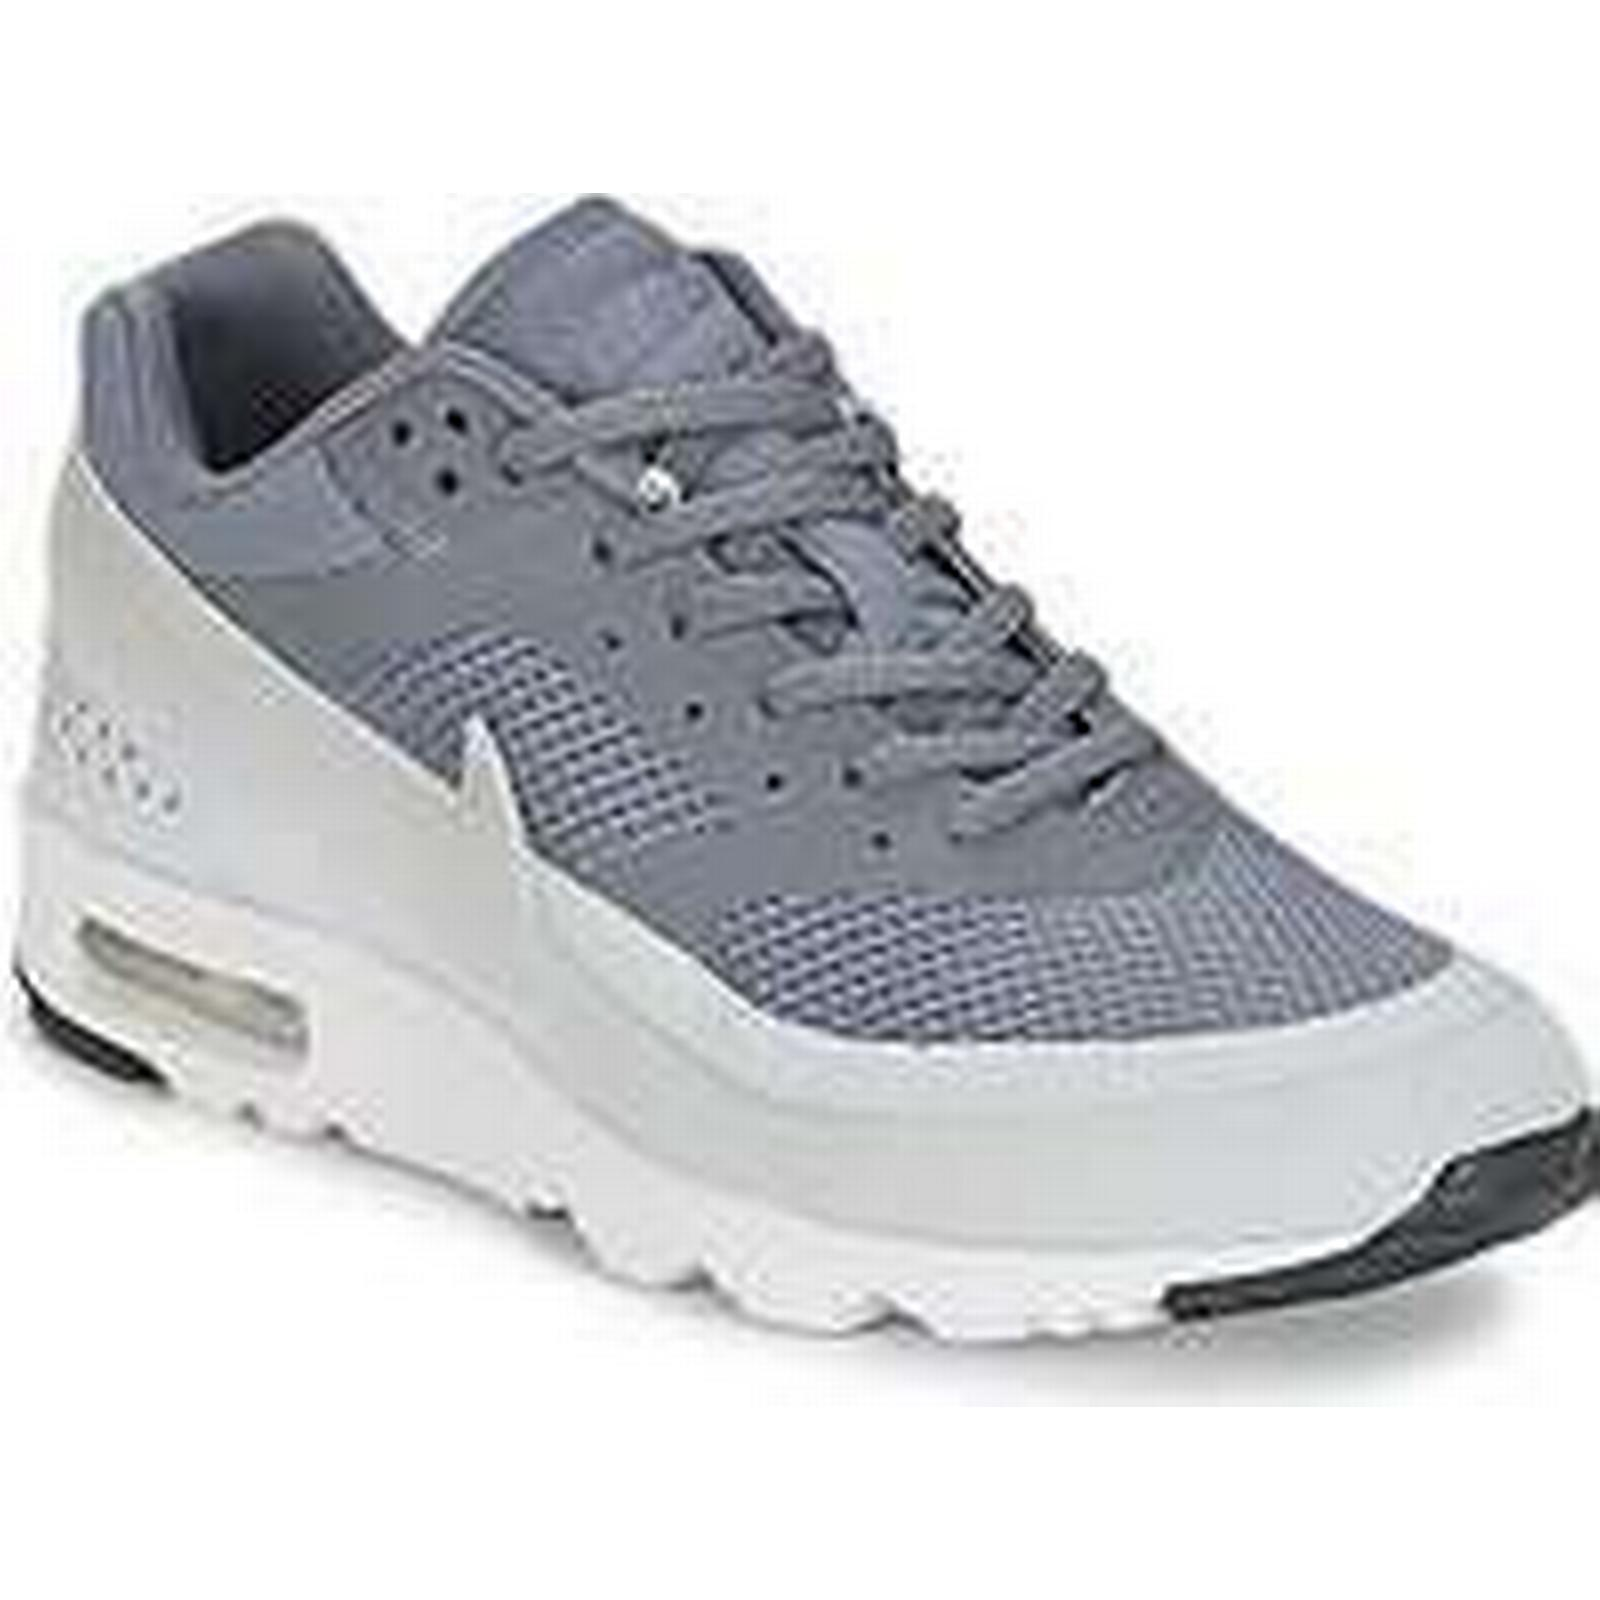 Spartoo.co.uk Nike AIR (Trainers) MAX BW ULTRA W women's Shoes (Trainers) AIR in Grey 2db17a